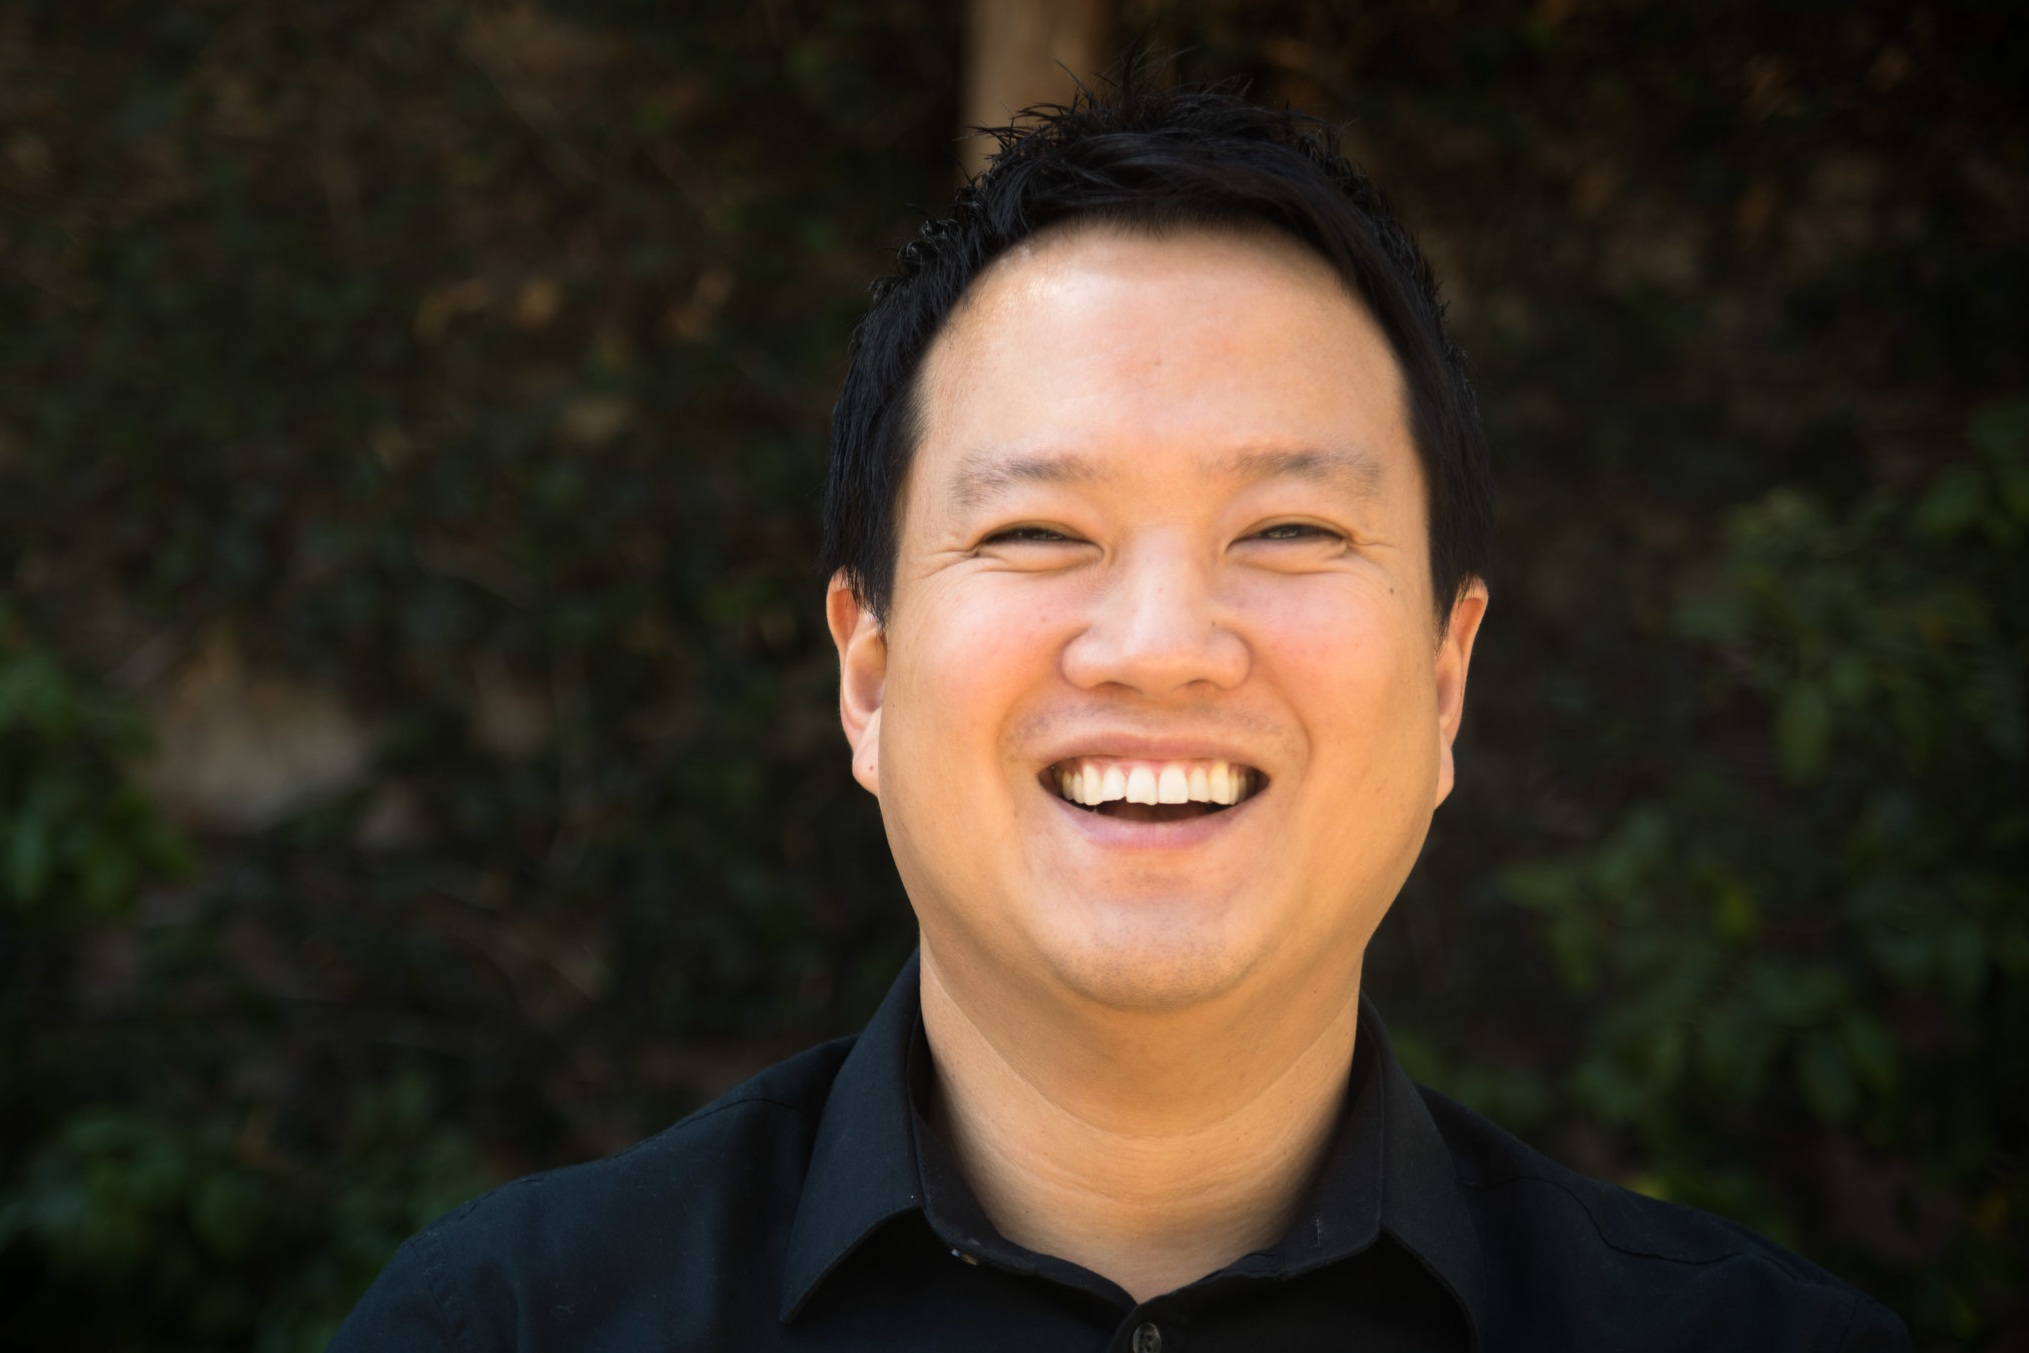 Jung Kim | Project Manager, Catalyst Convergence